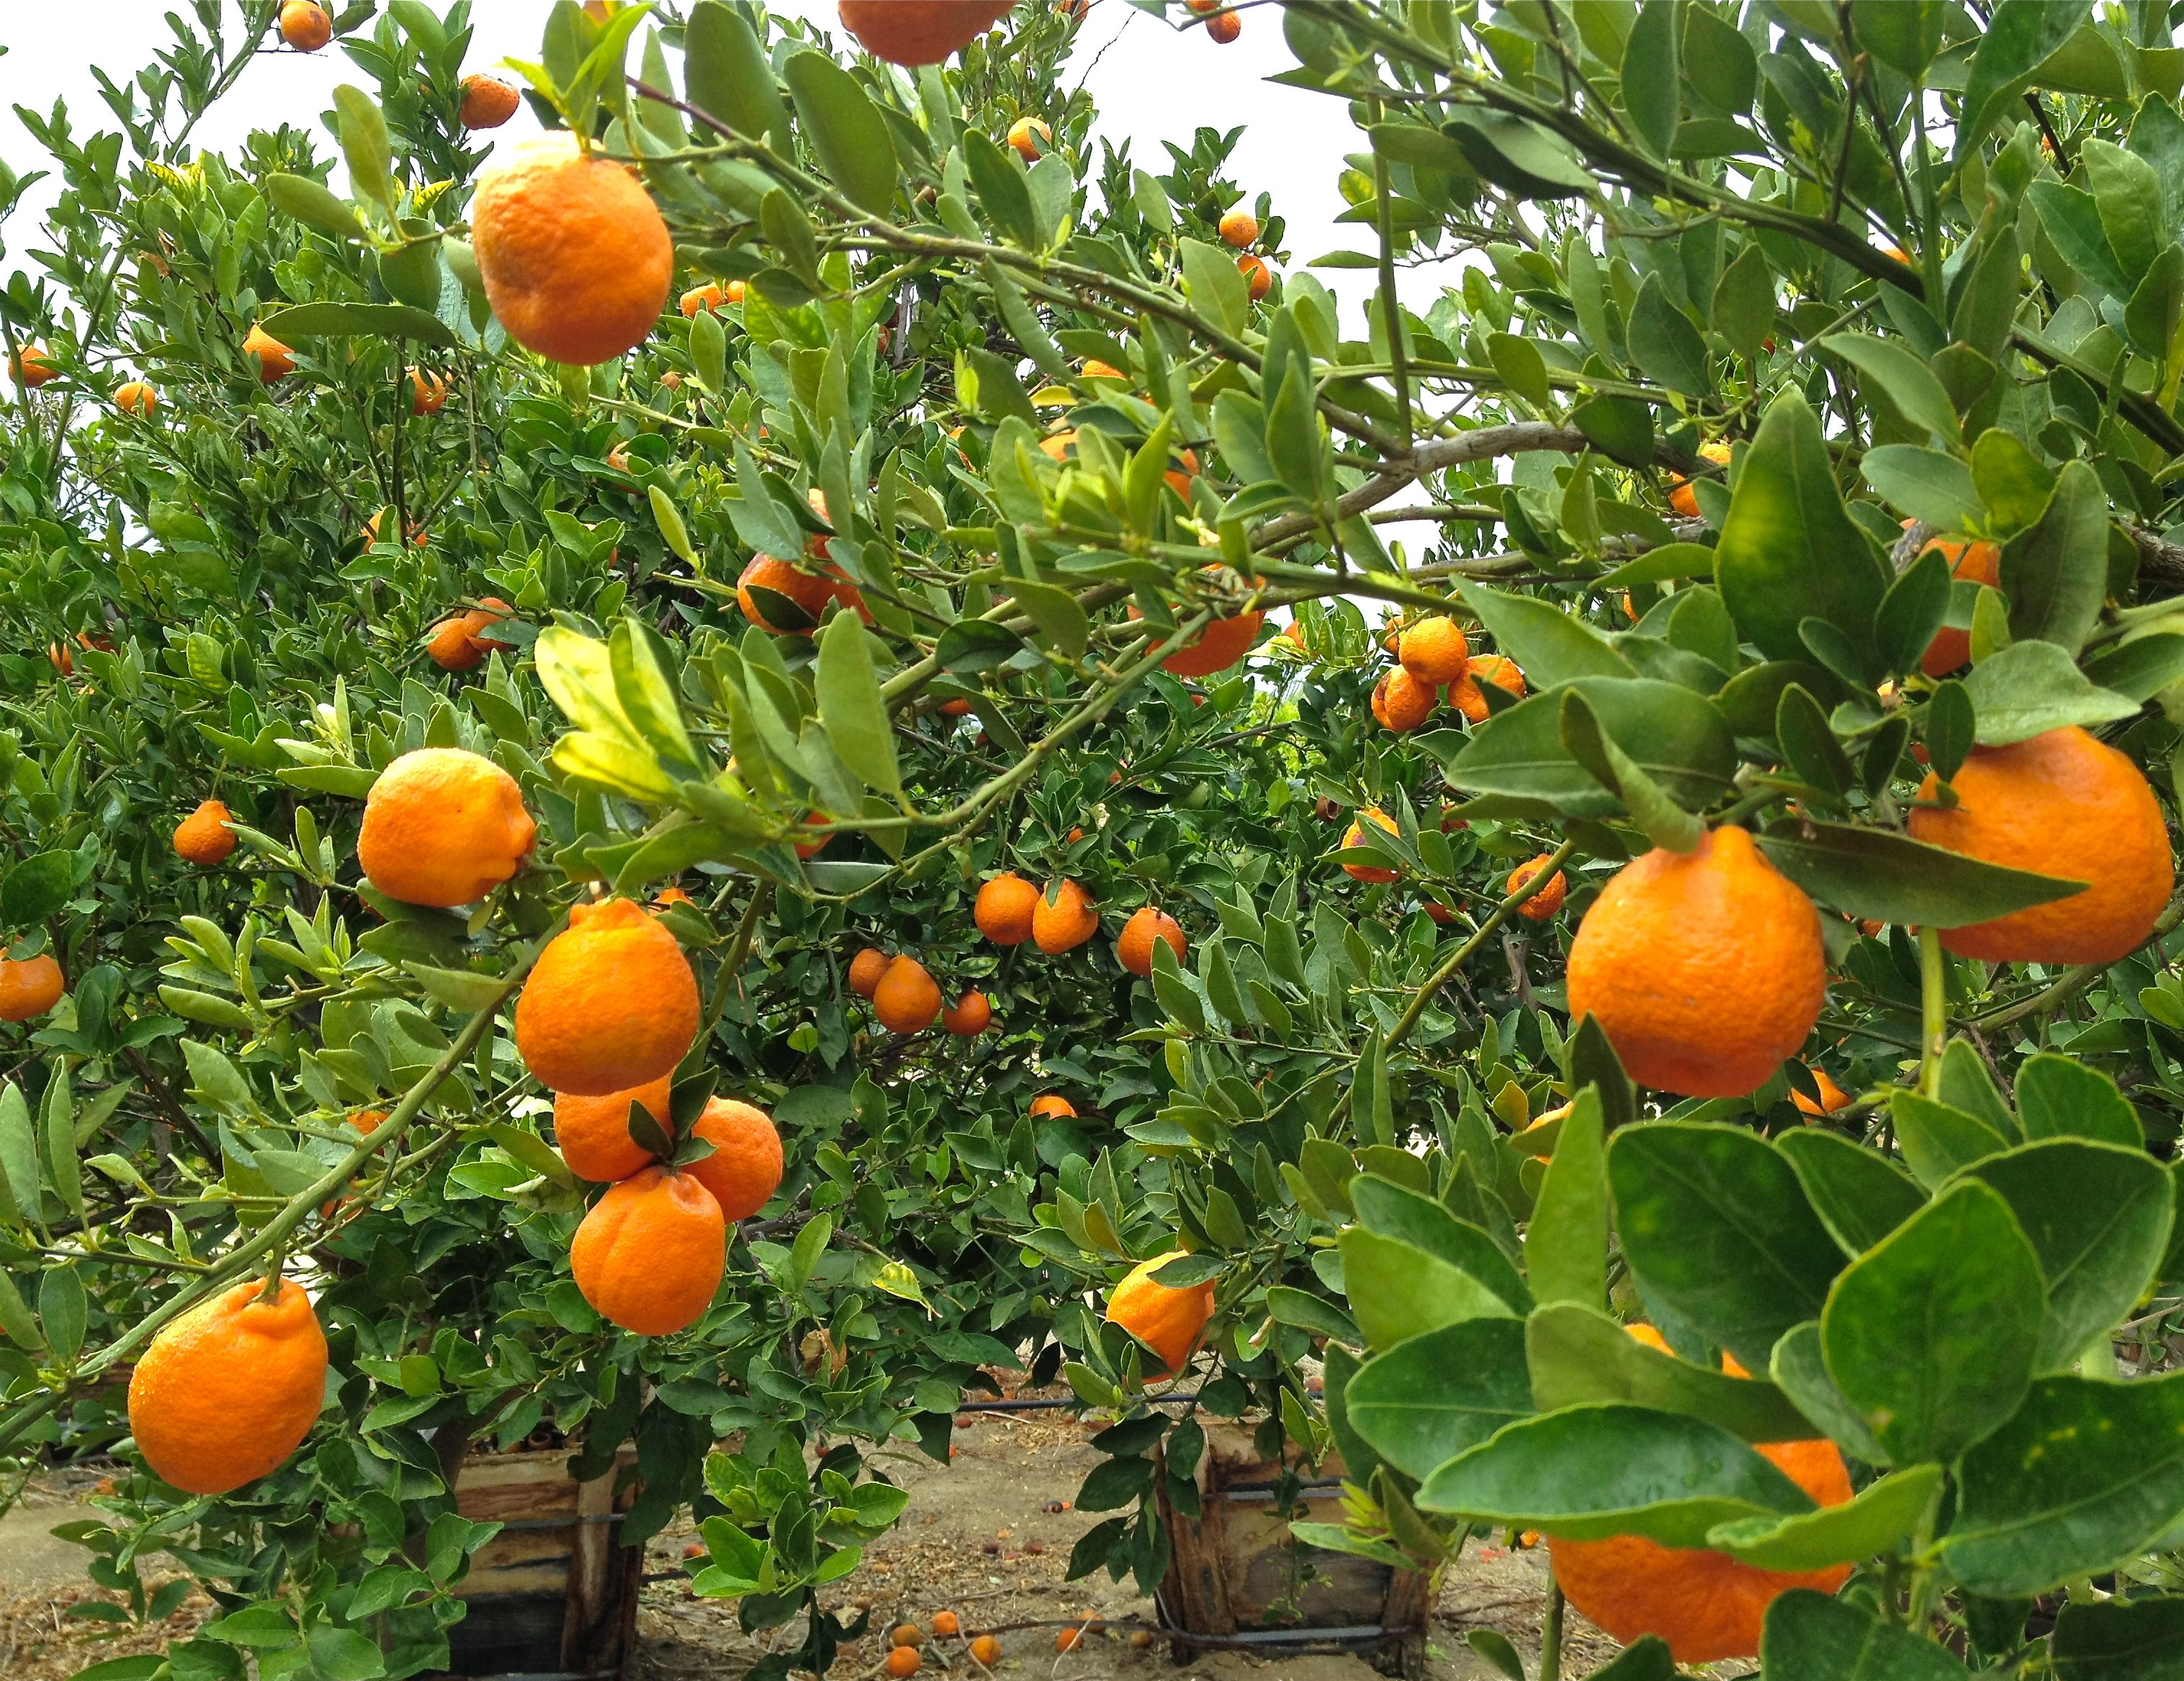 Pin By Cindy On Cindyc Citrusize Tangerine Tree Fruit Trees Dream Garden